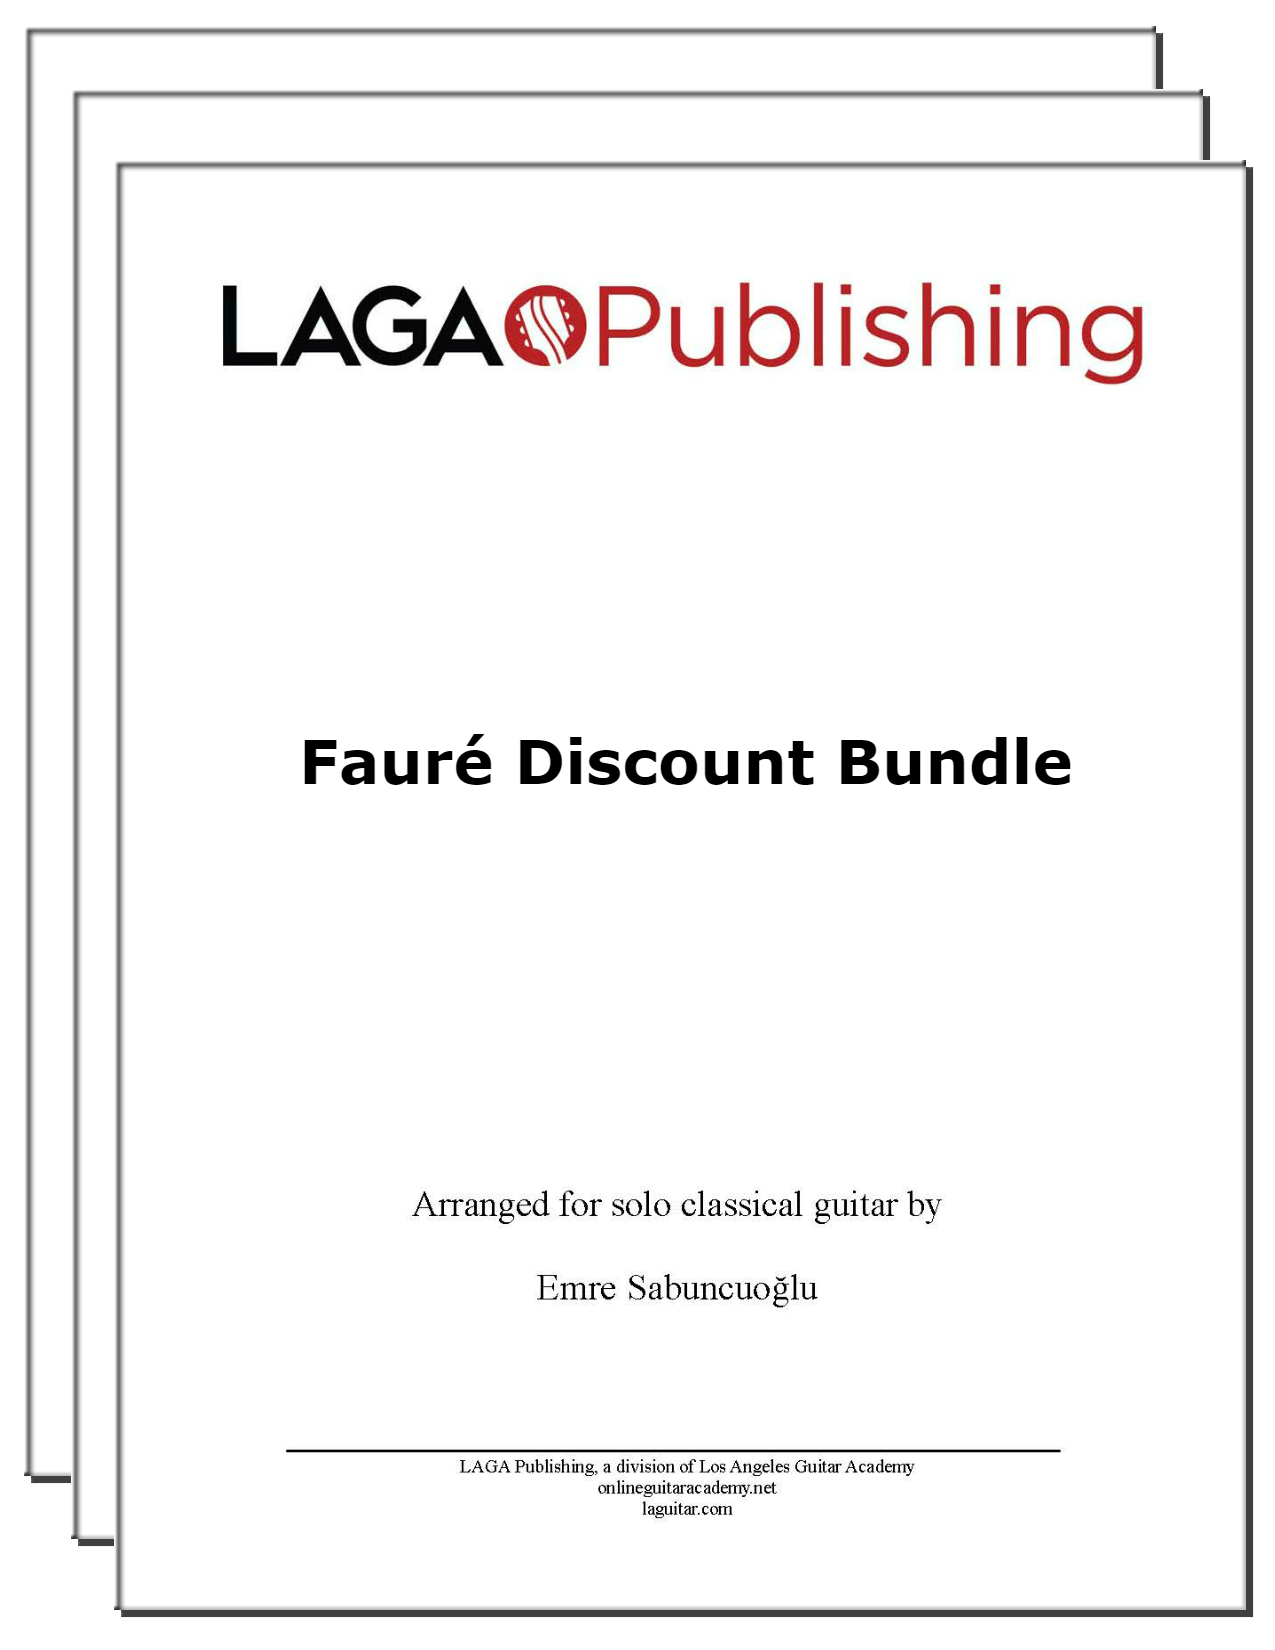 LAGA-Publishing-faure-discount-bundle